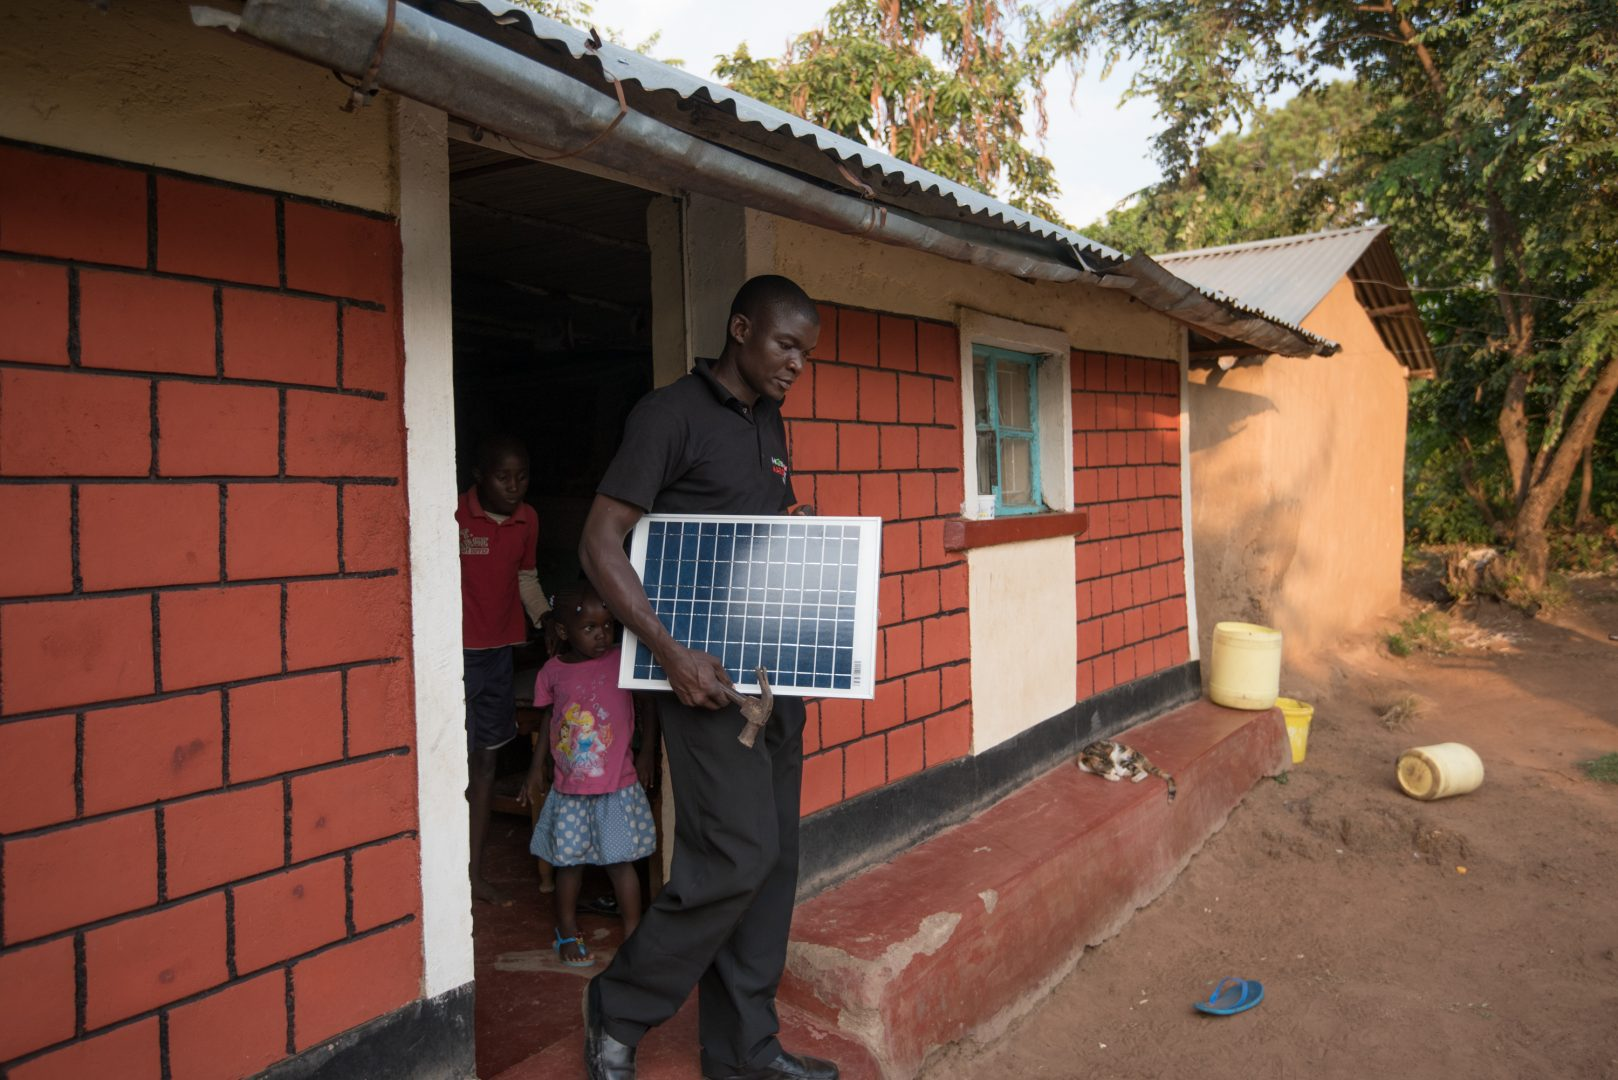 Man carries a solar panel out of a red brick building